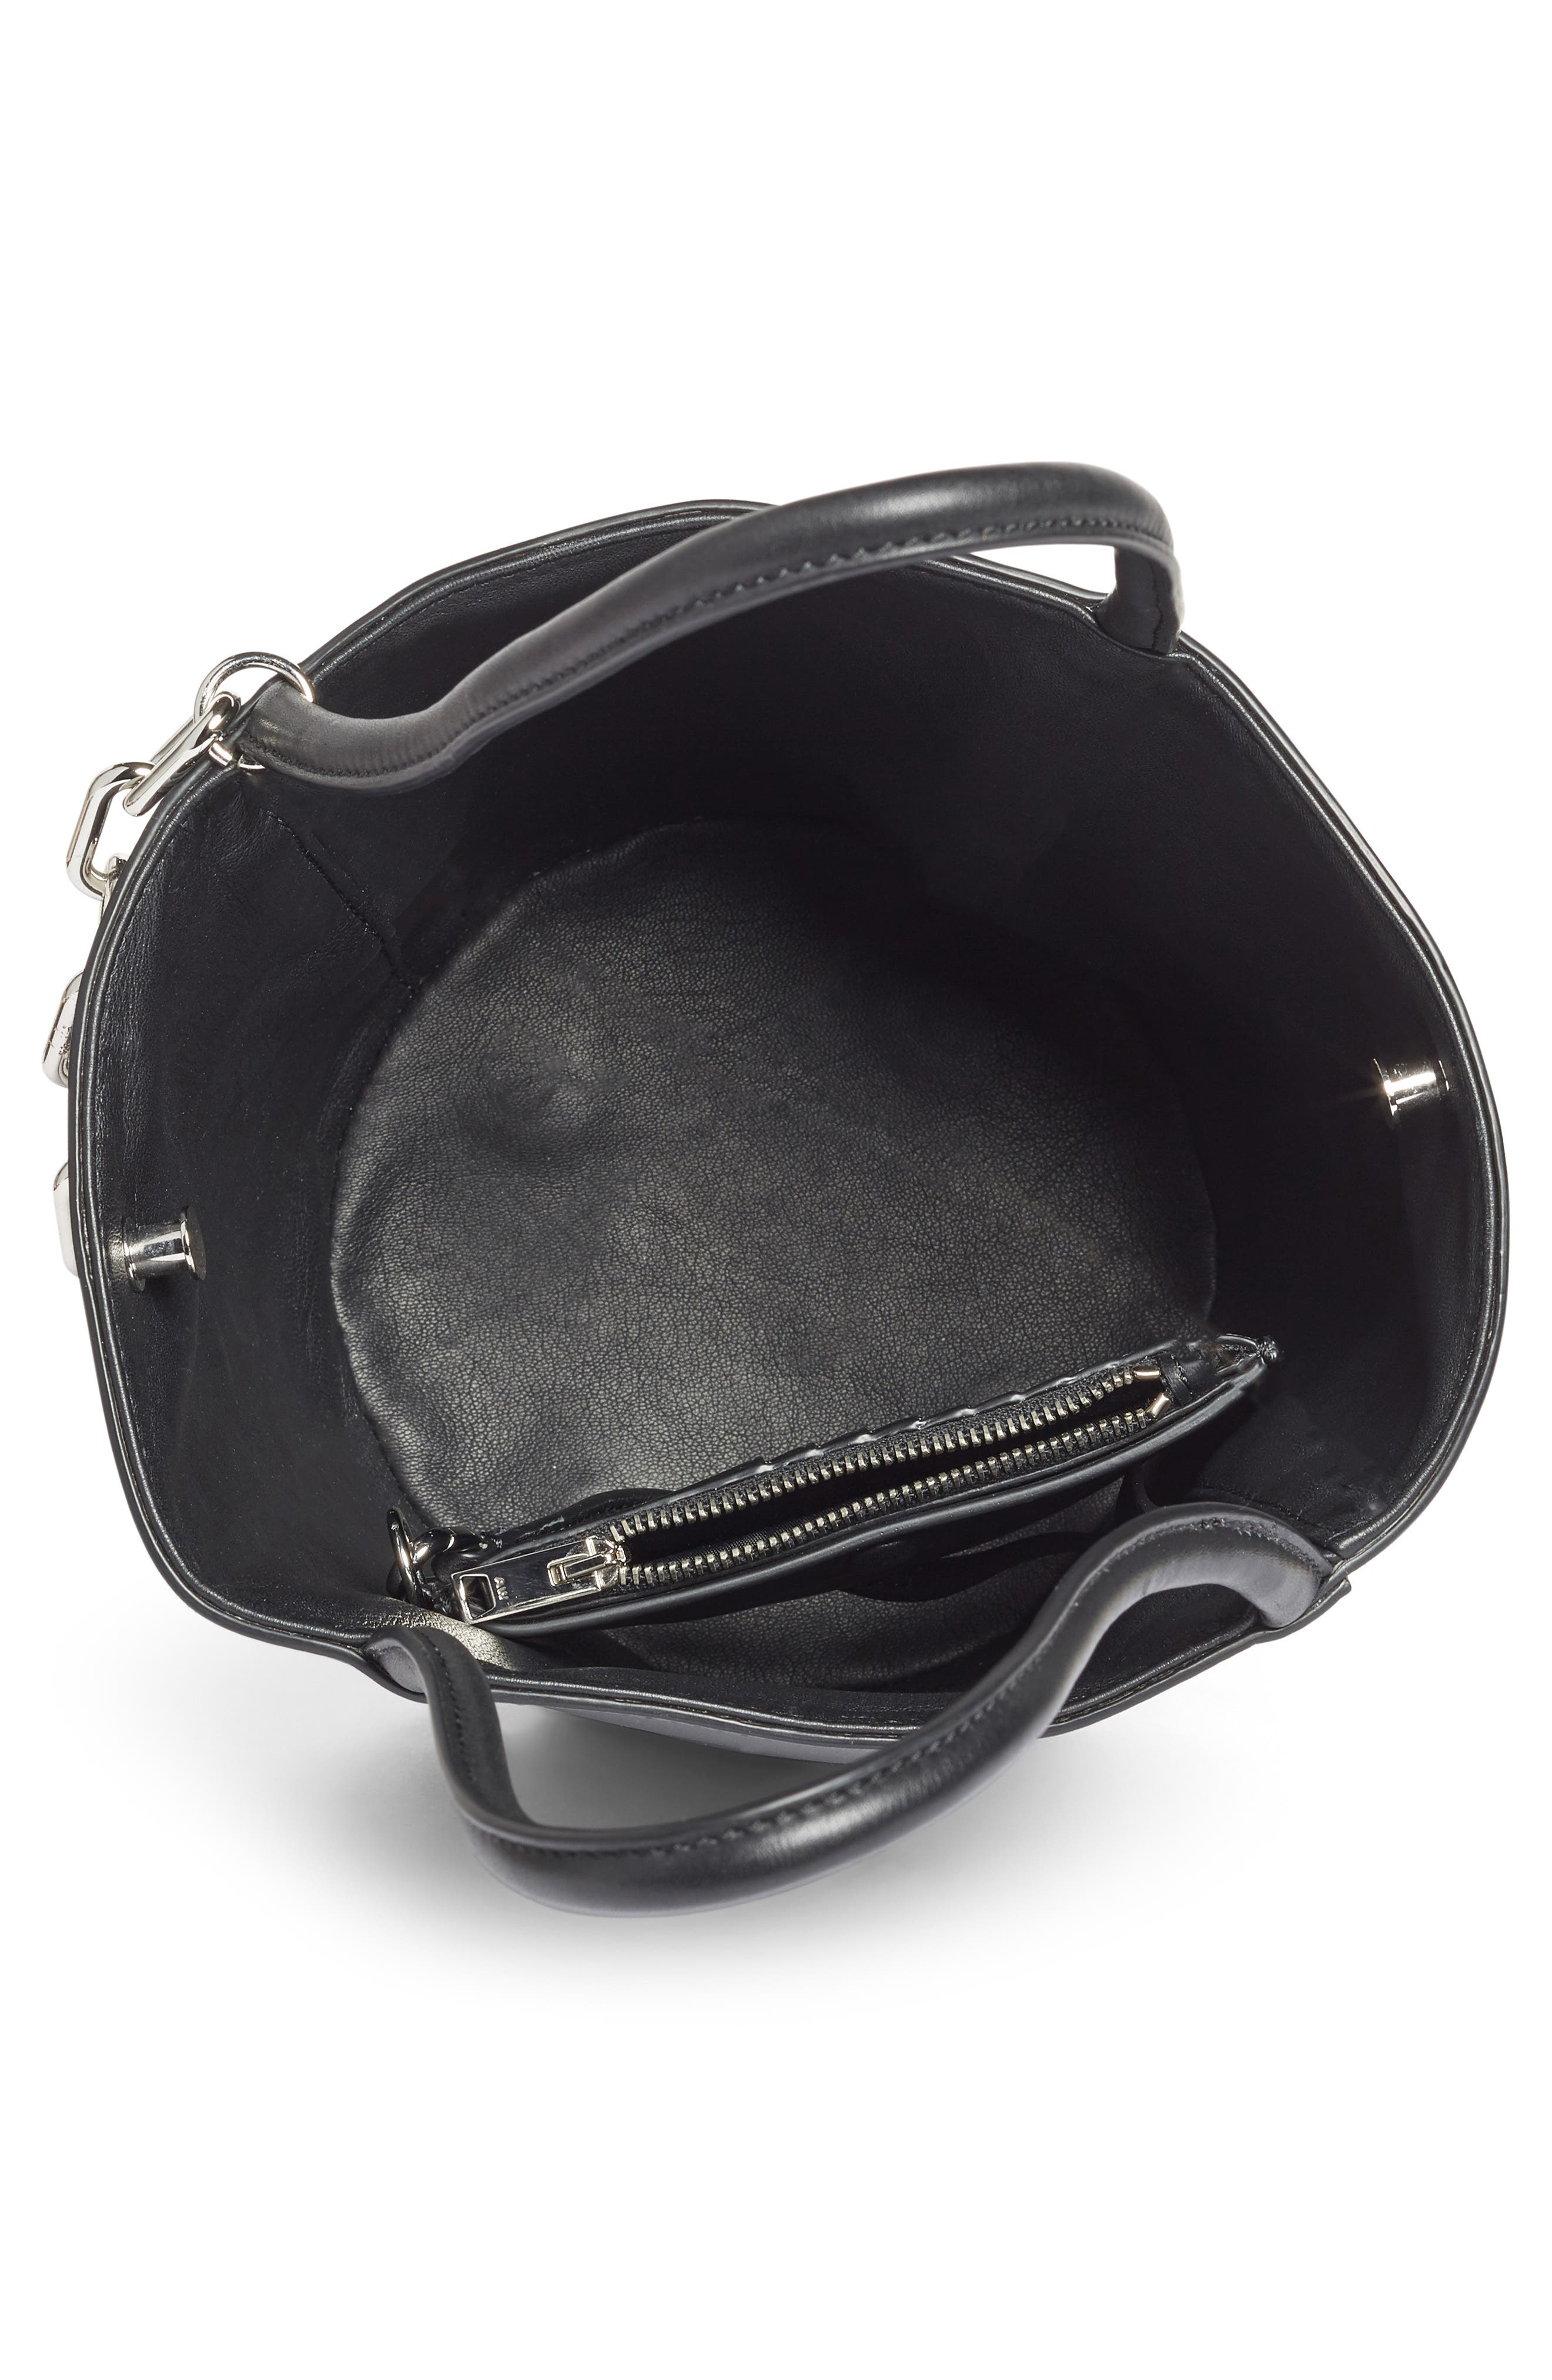 Roxy Leather Bucket Bag,                             Alternate thumbnail 4, color,